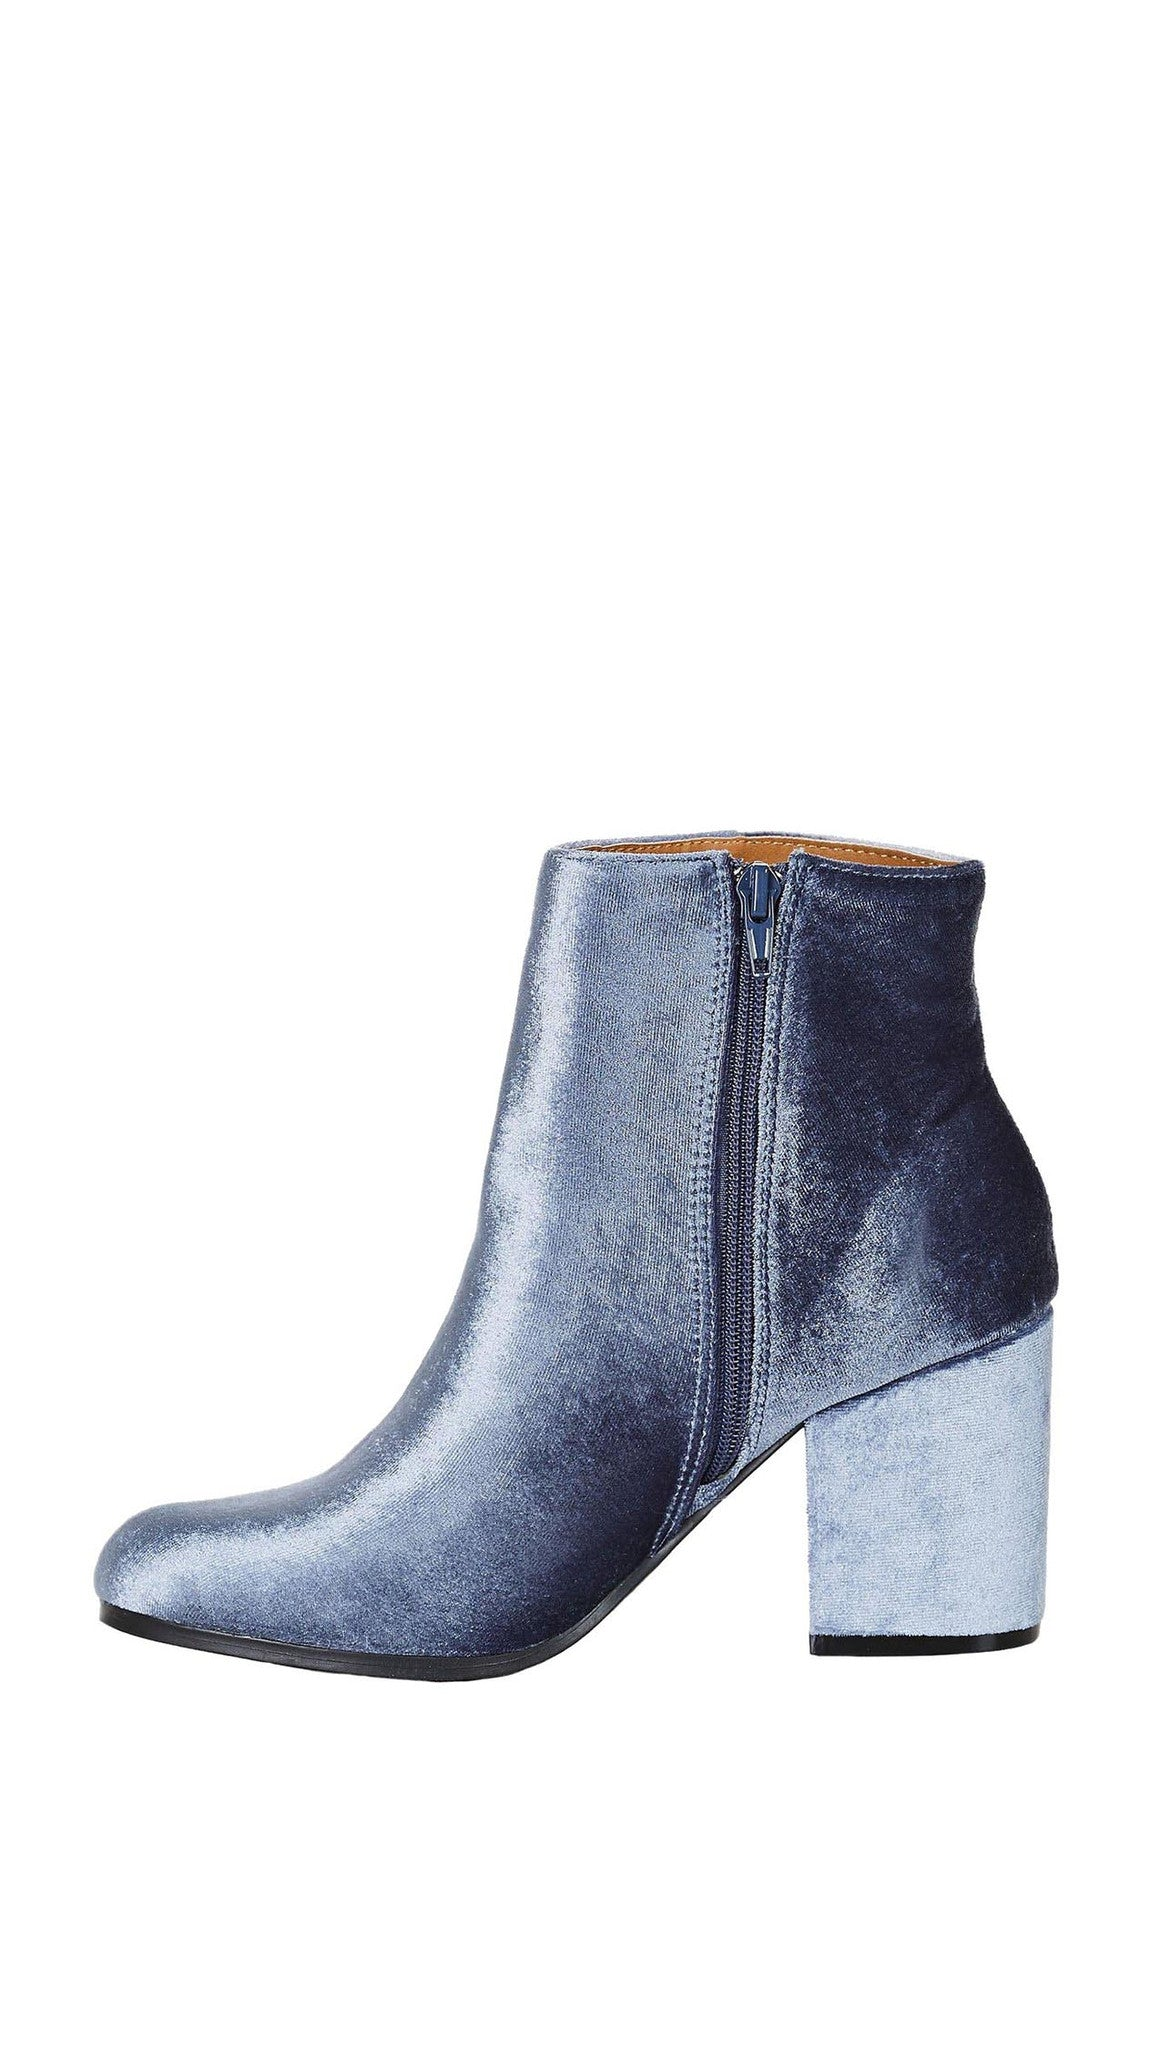 4cccec2950f Velour Ankle Booties Ice Blue